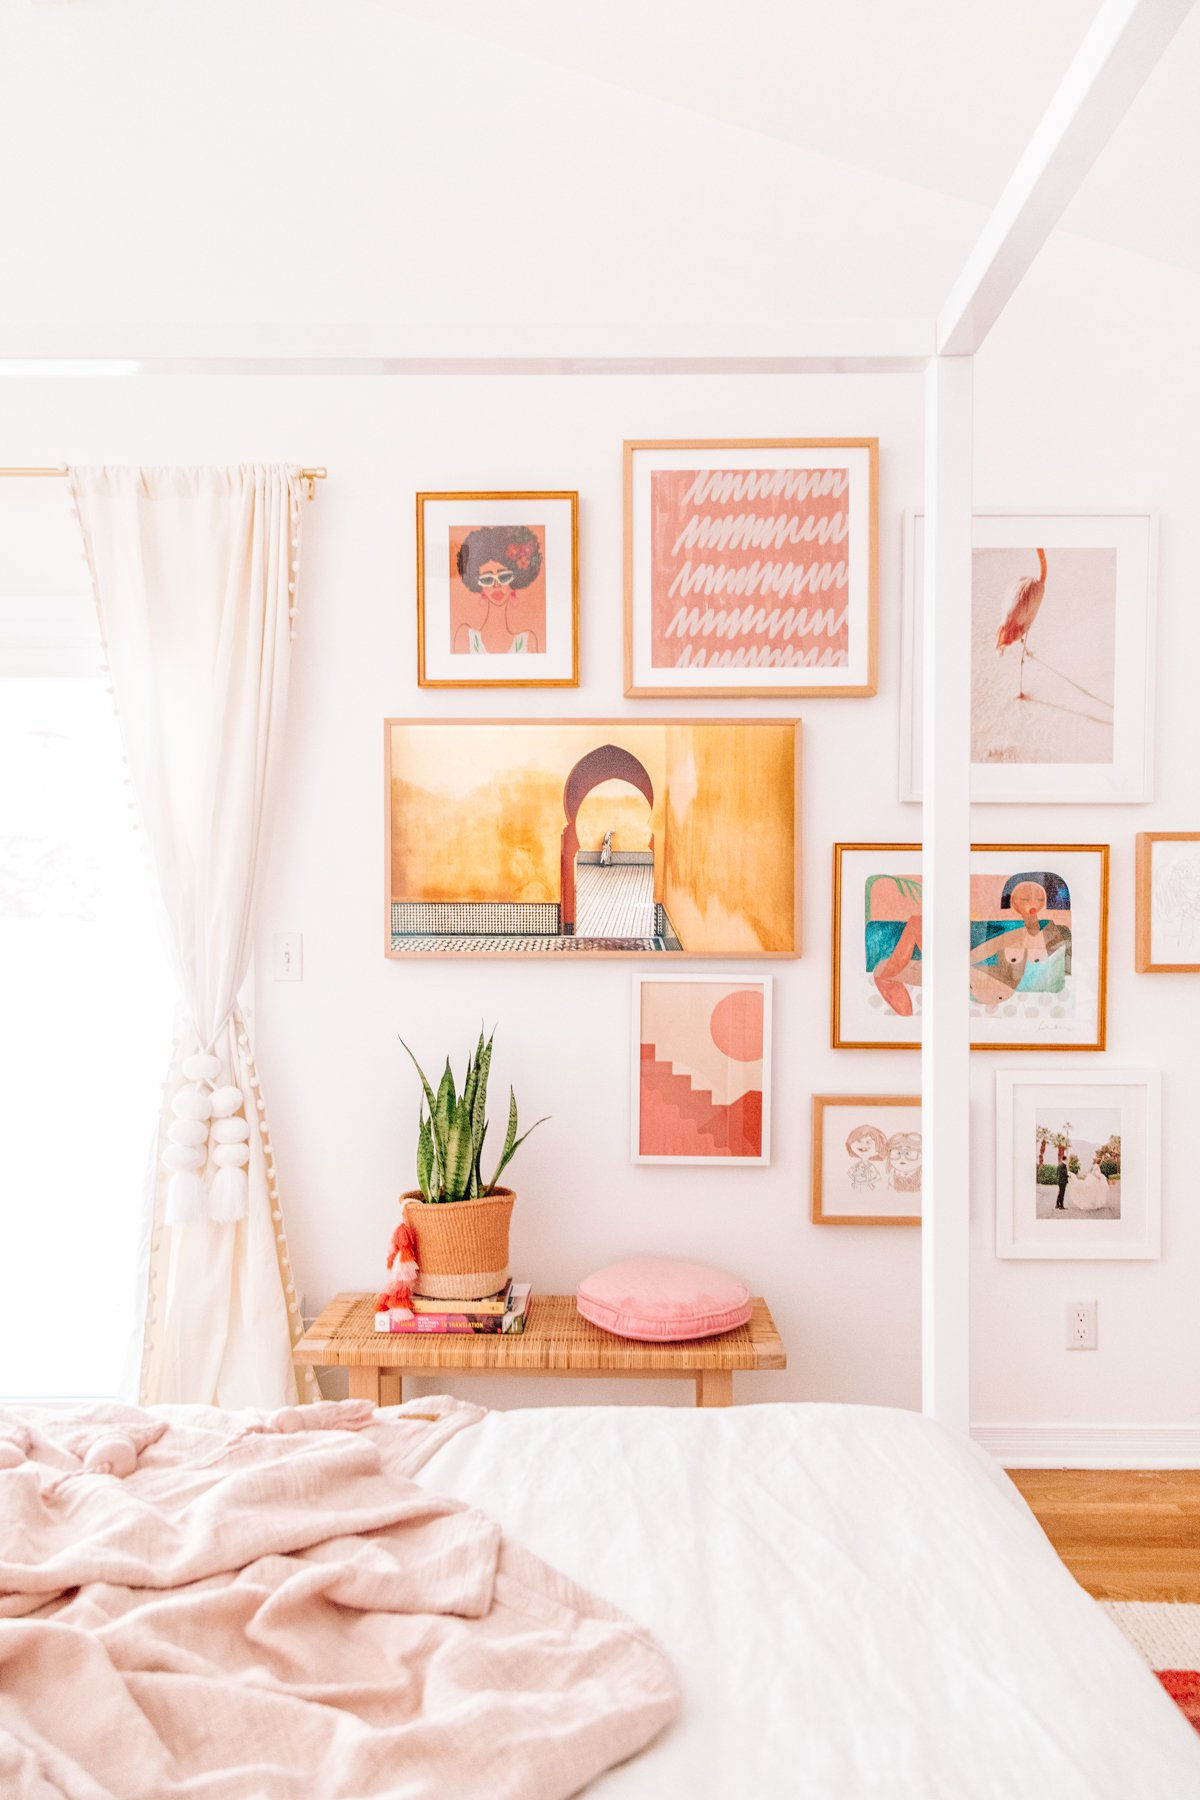 Wall art gallery with warm tones